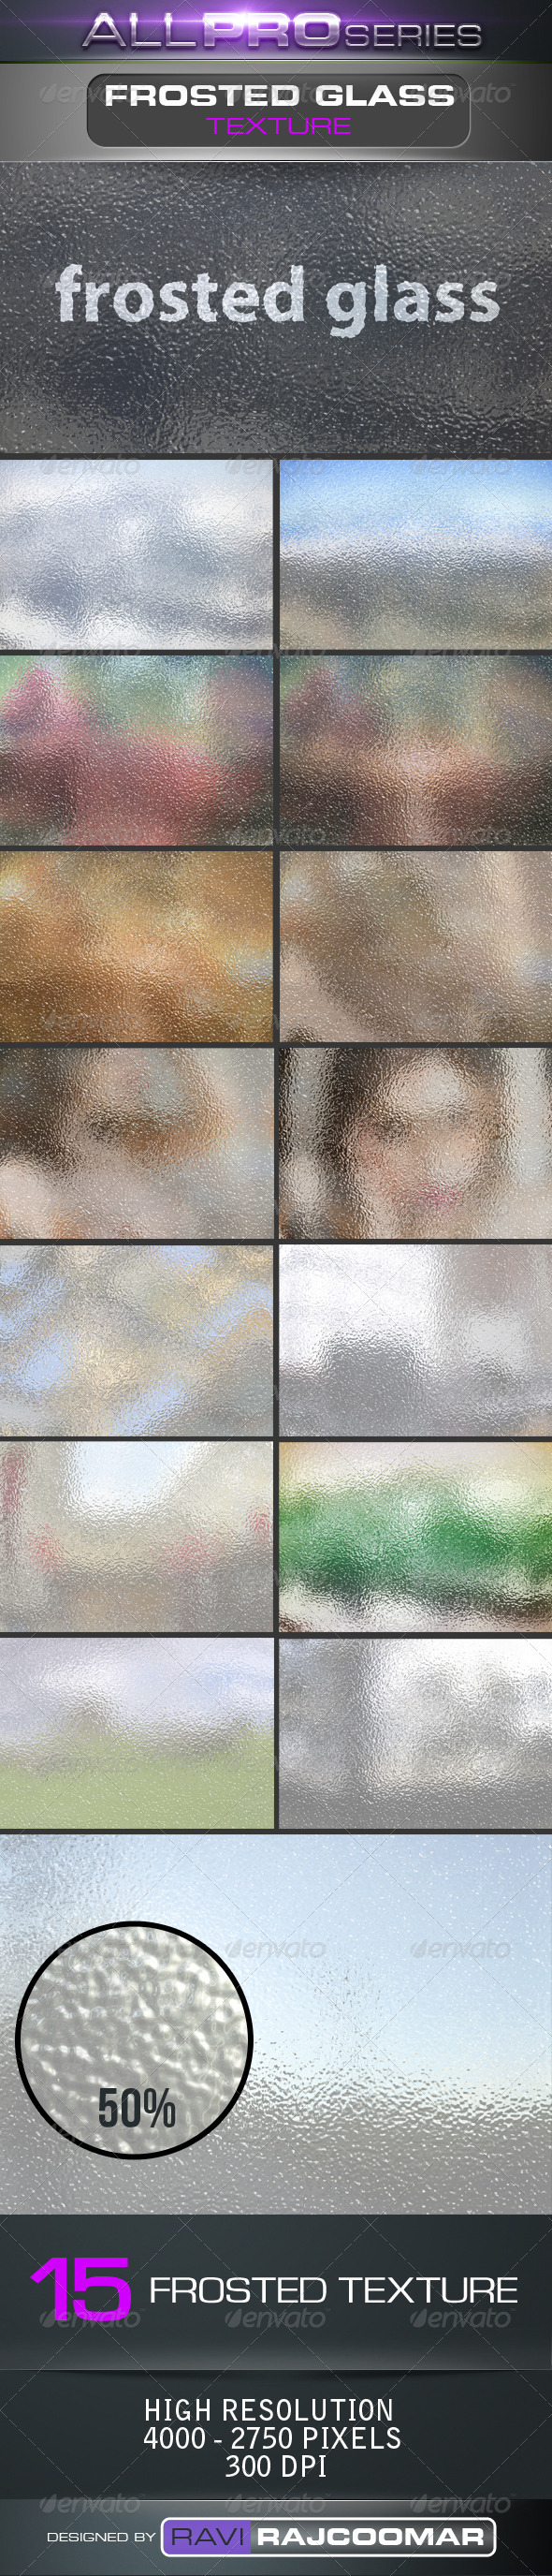 Frosted Glass Backgrounds - Nature Backgrounds